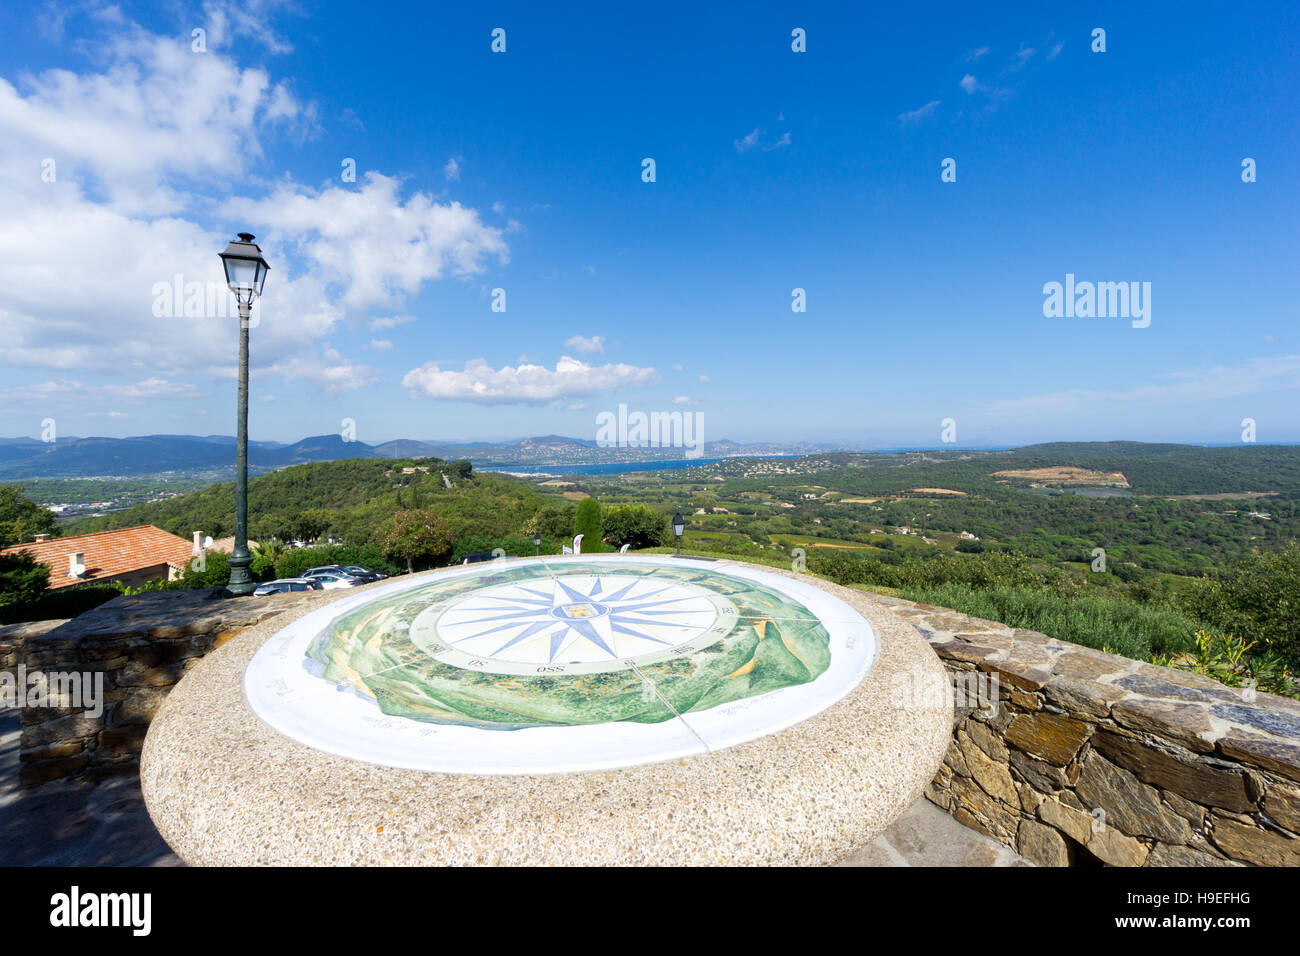 The orientation table in Gassin, Var, France. - Stock Image